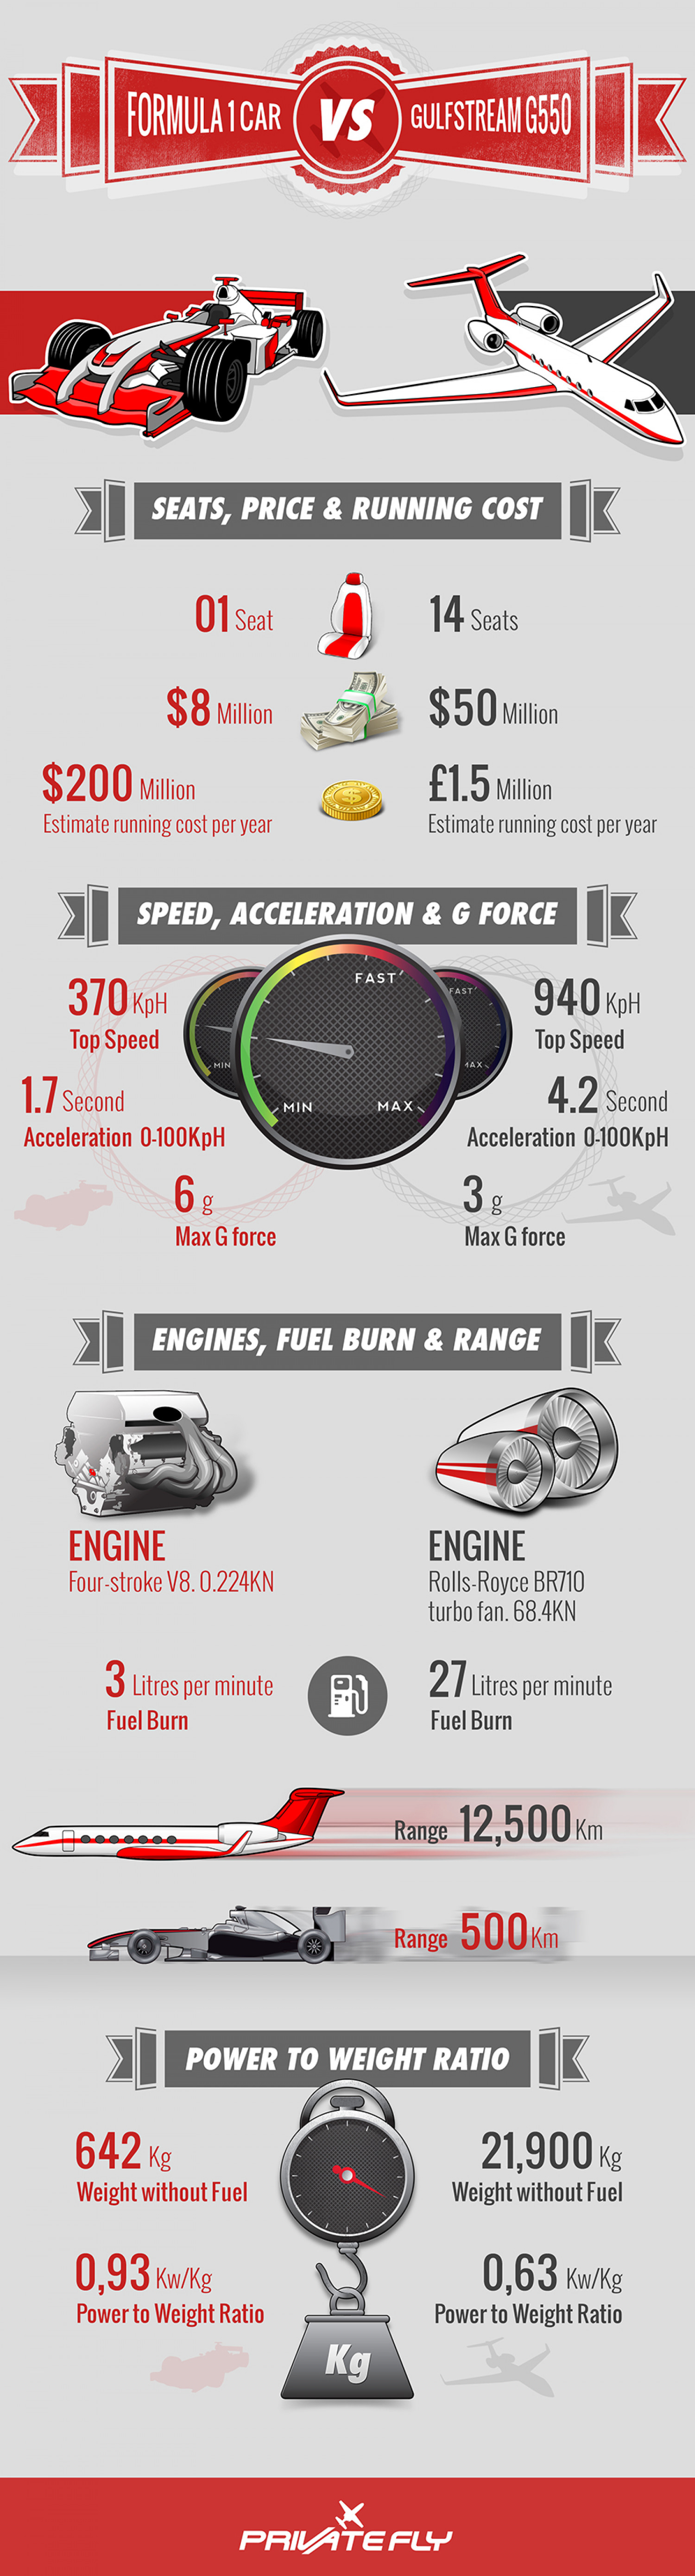 Formula 1 Car vs Gulfstream Jet Infographic